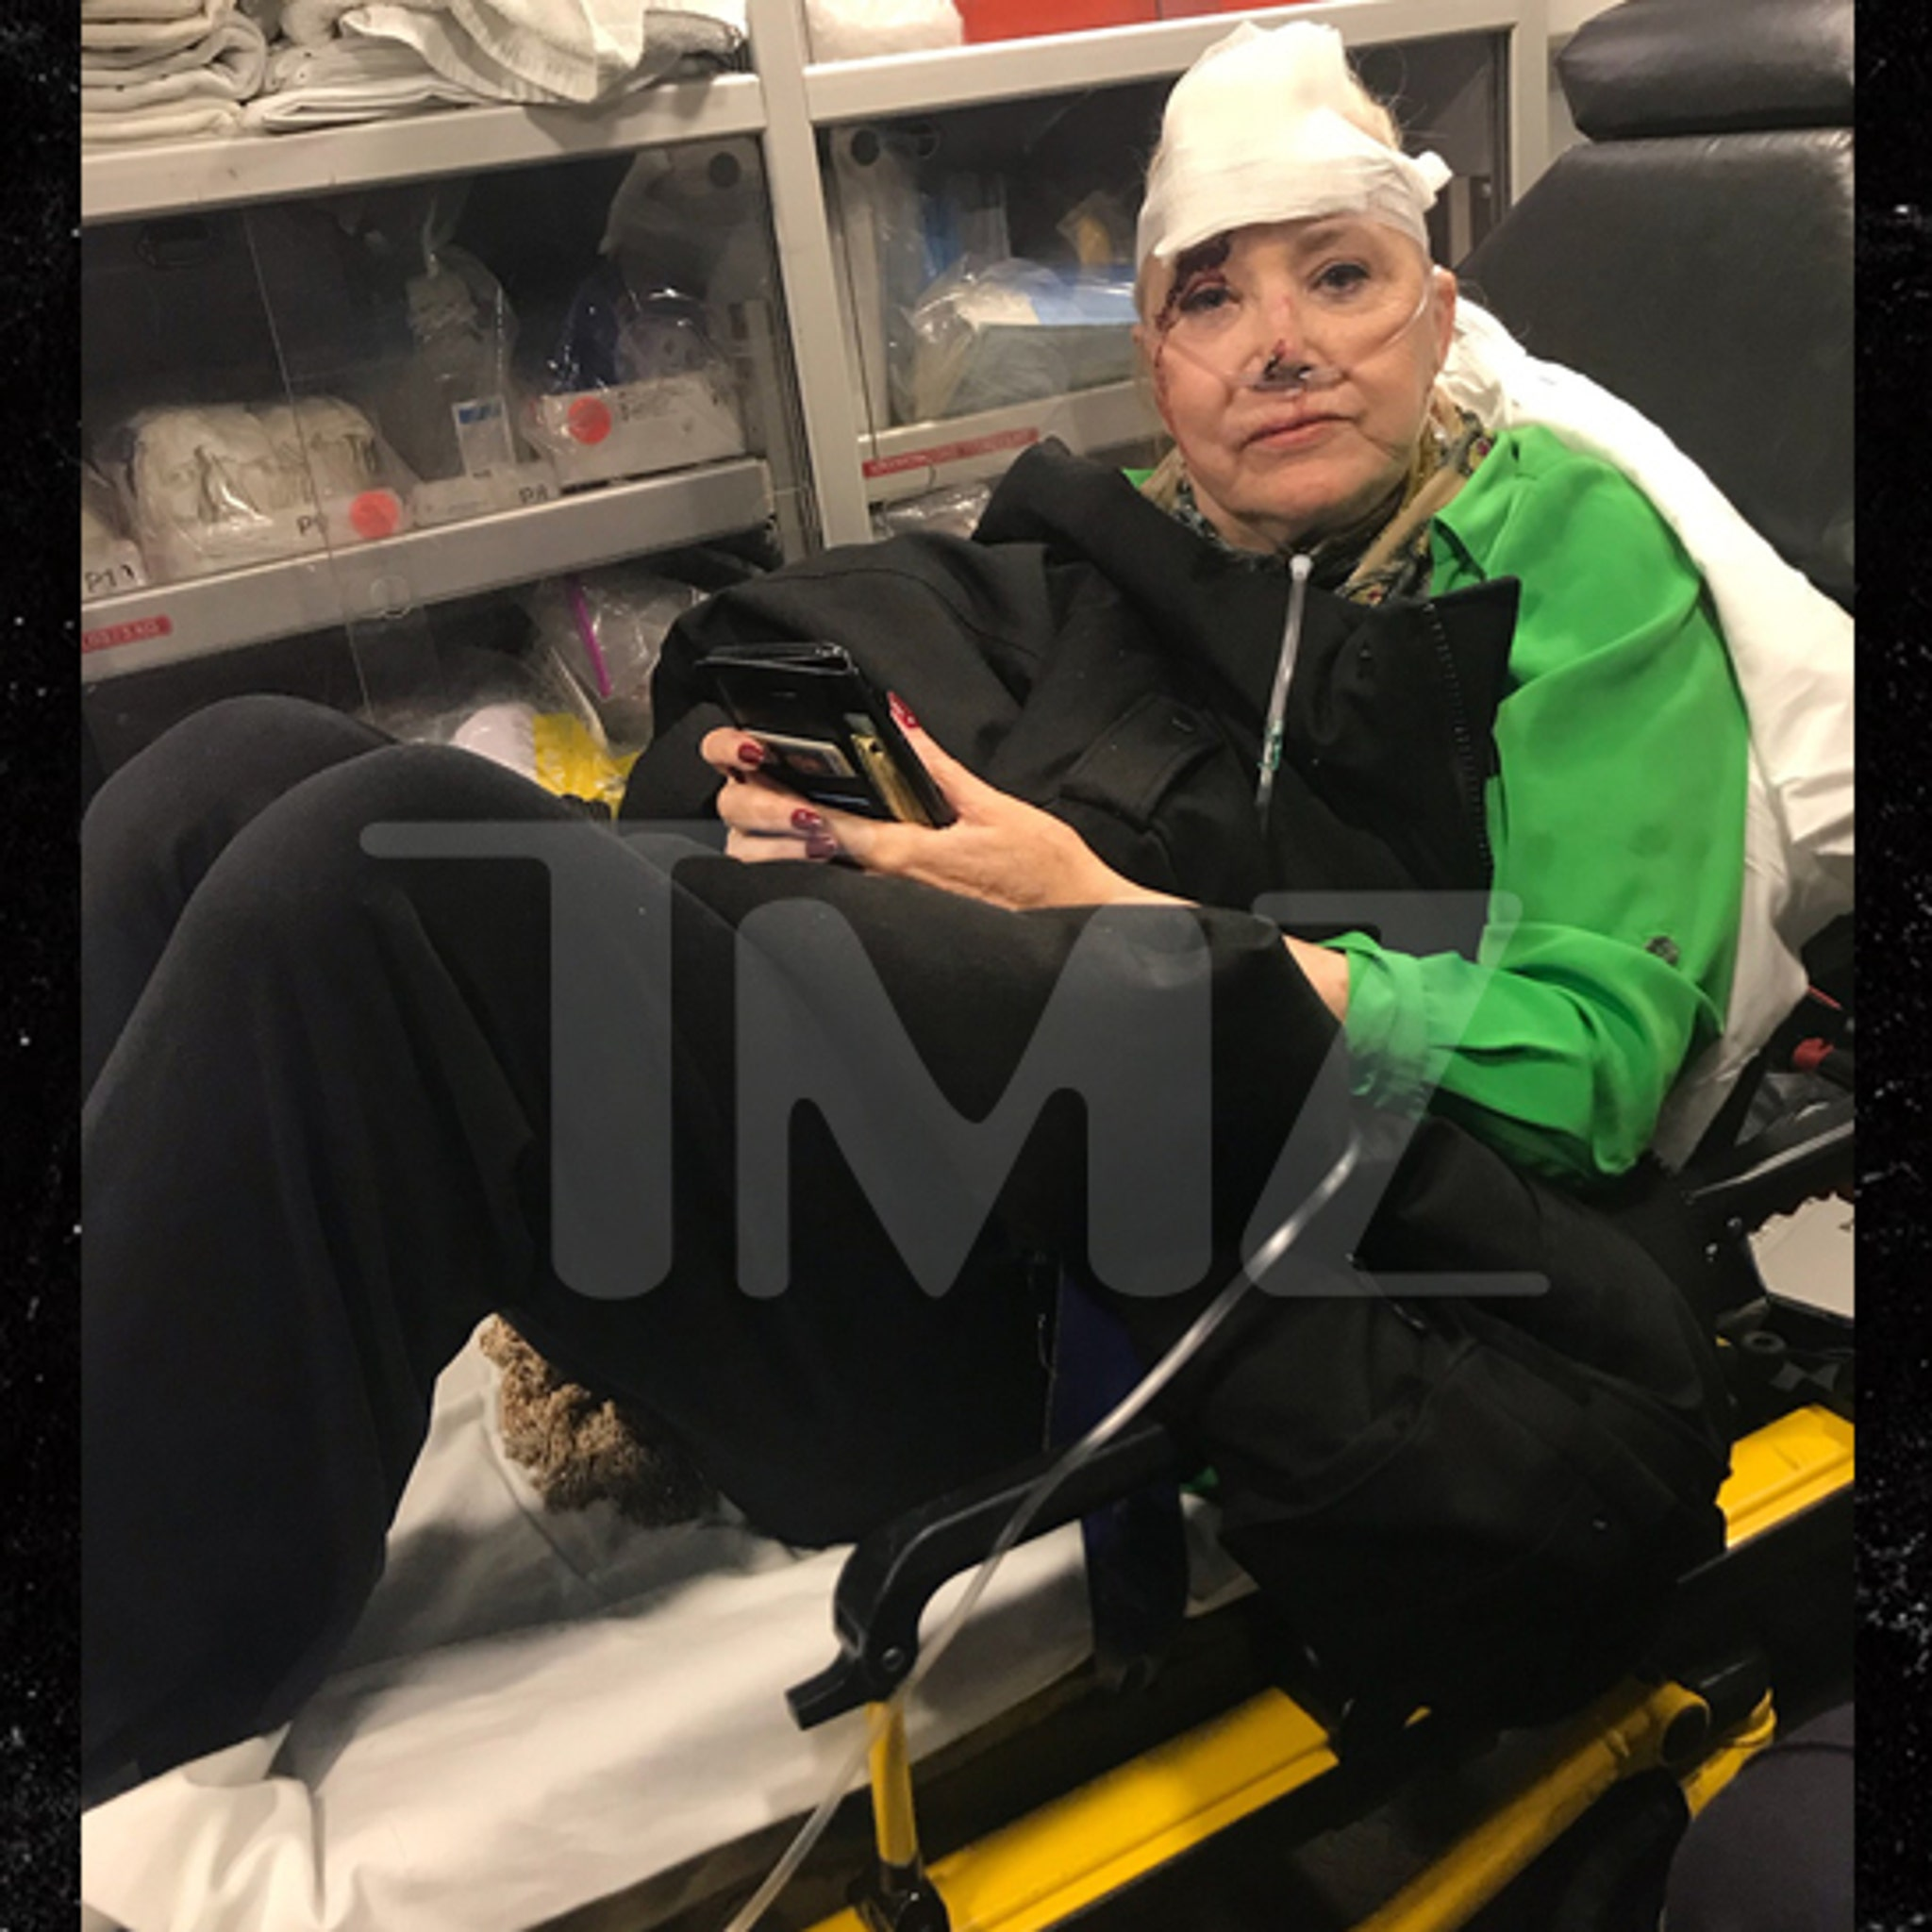 Sally Kirkland In Surgery After Bad Fall (UPDATE)